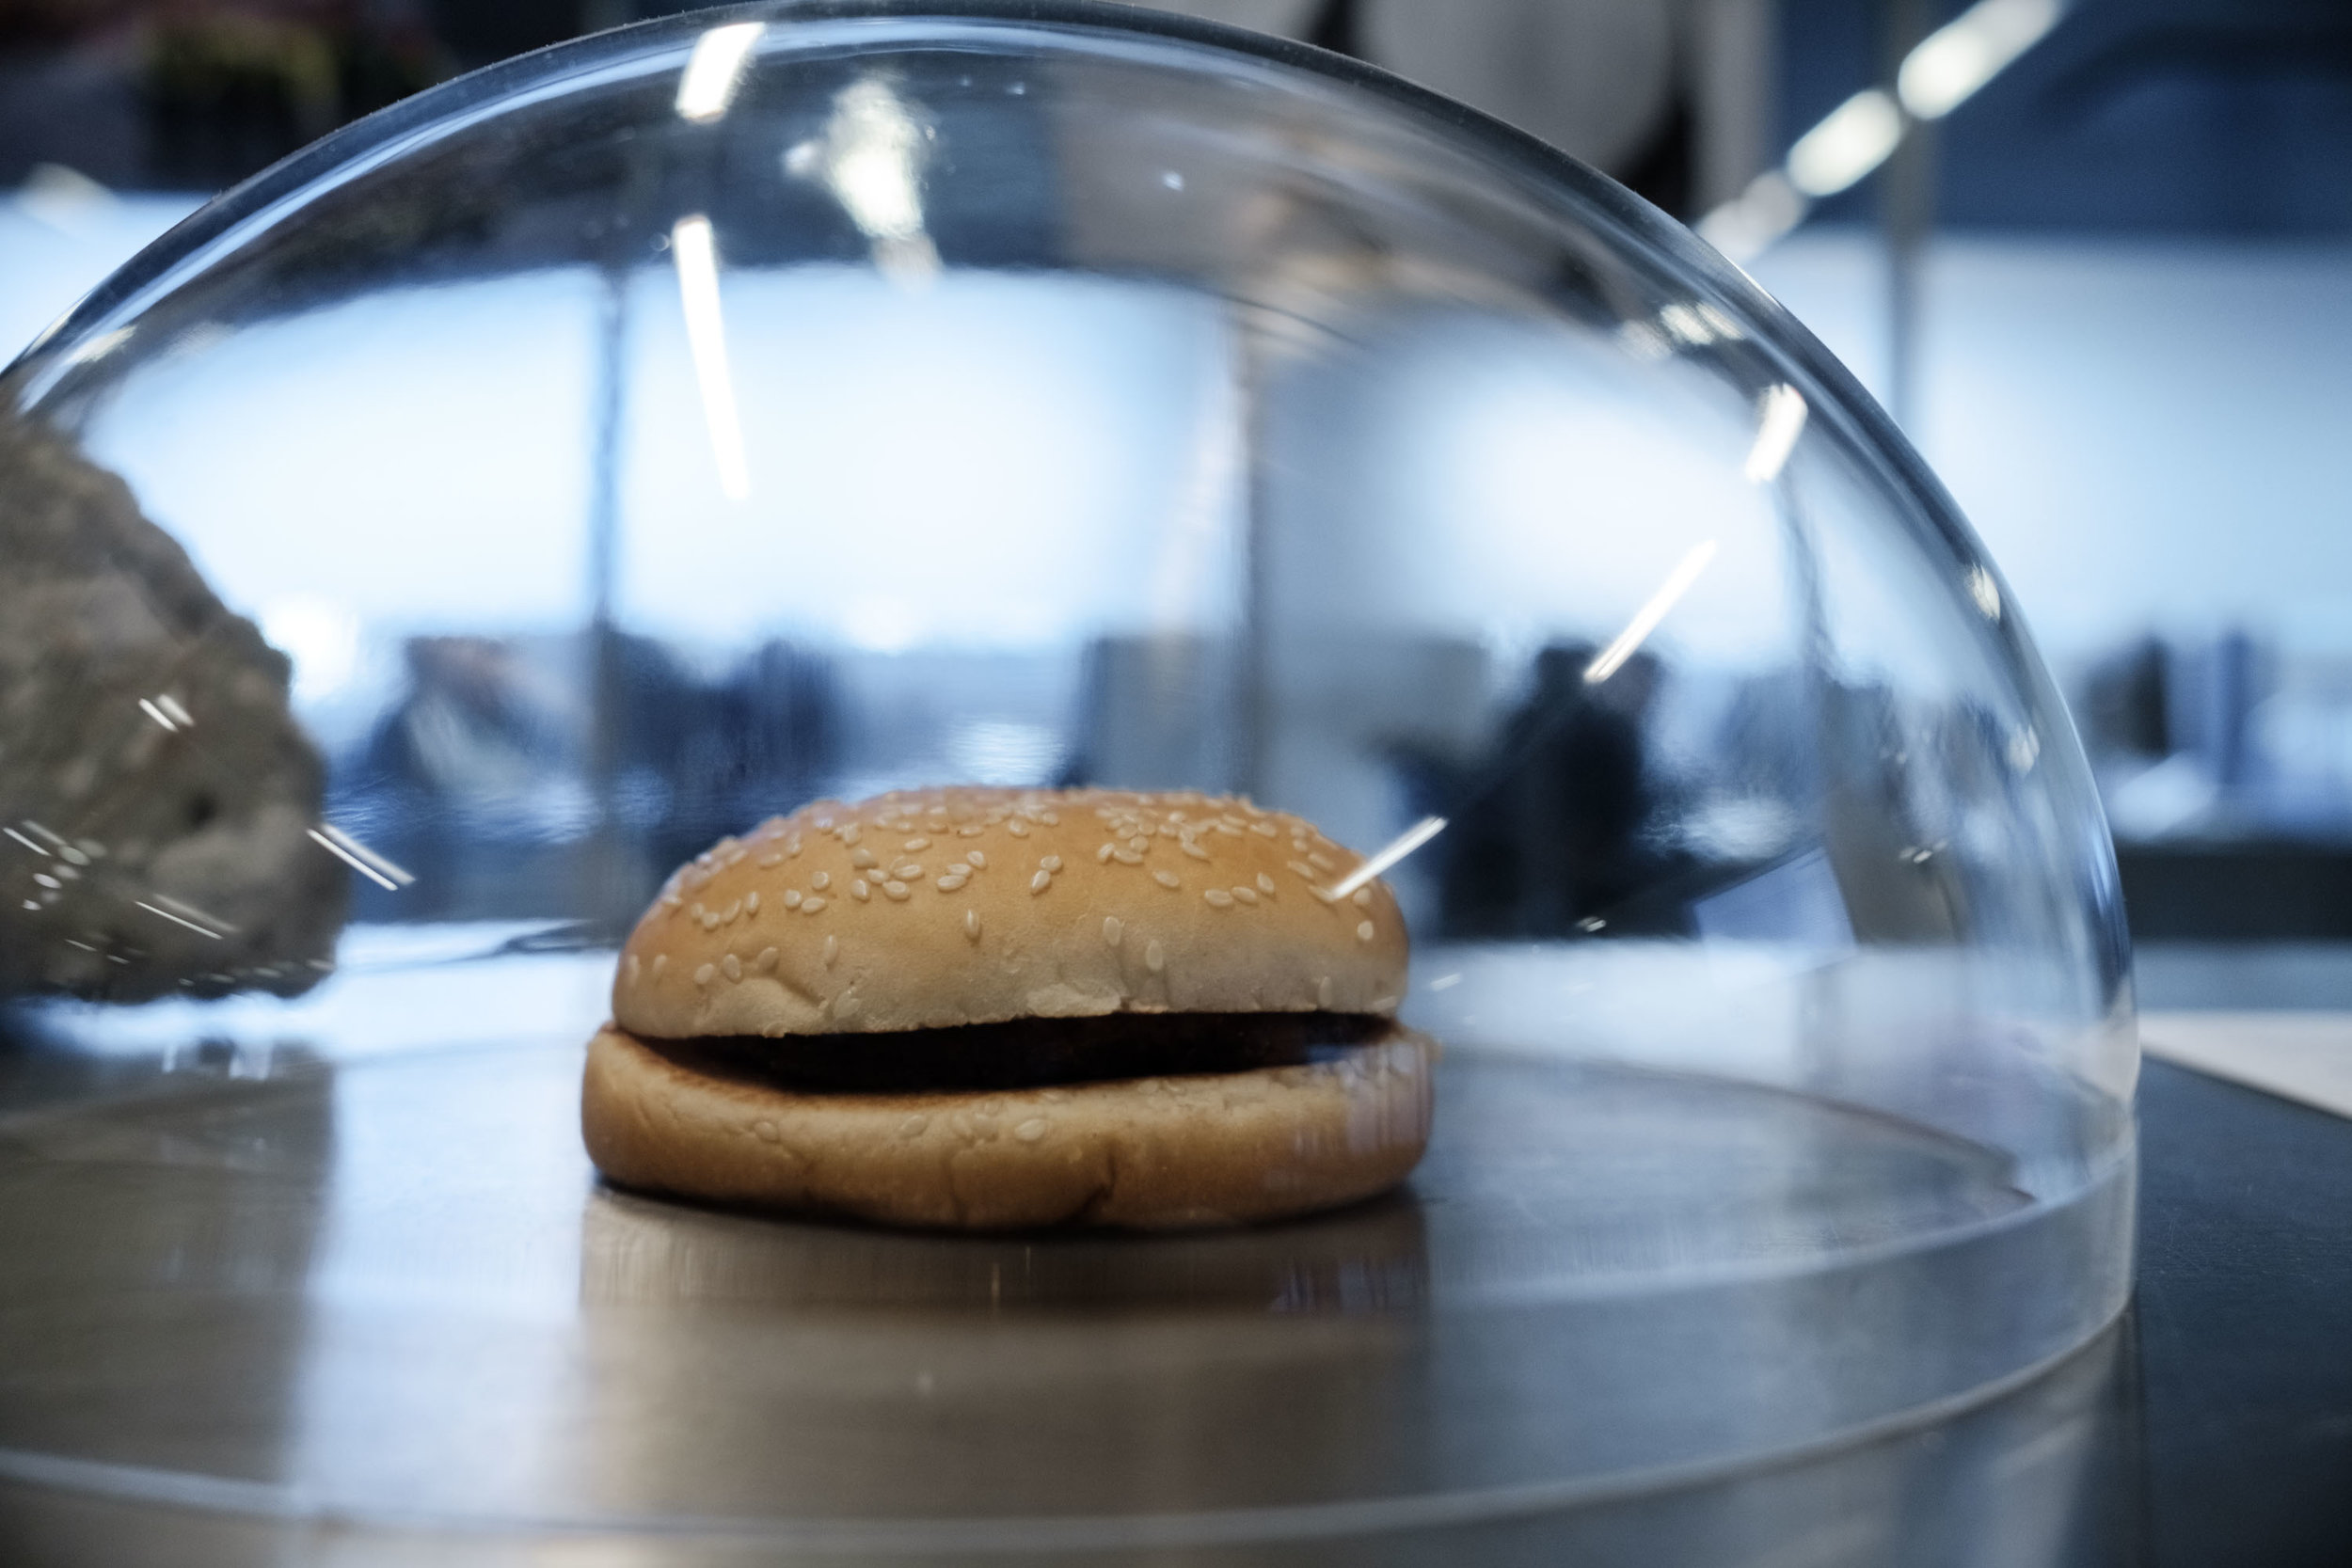 The fast-food hamburger   It was the epitome of the 'energy glut': fast, cheap & delicious. As critique grew of industrial meat, the slice of protein shifted, first to plants & legumes, then to in vitro meat. But there was no saving it, displayed before you is the last fast-food burger ever served in 2038. People still put slices of protein between buns - but golden arches and burger royalties are no more.  Preserved and donated by Tobias Linné